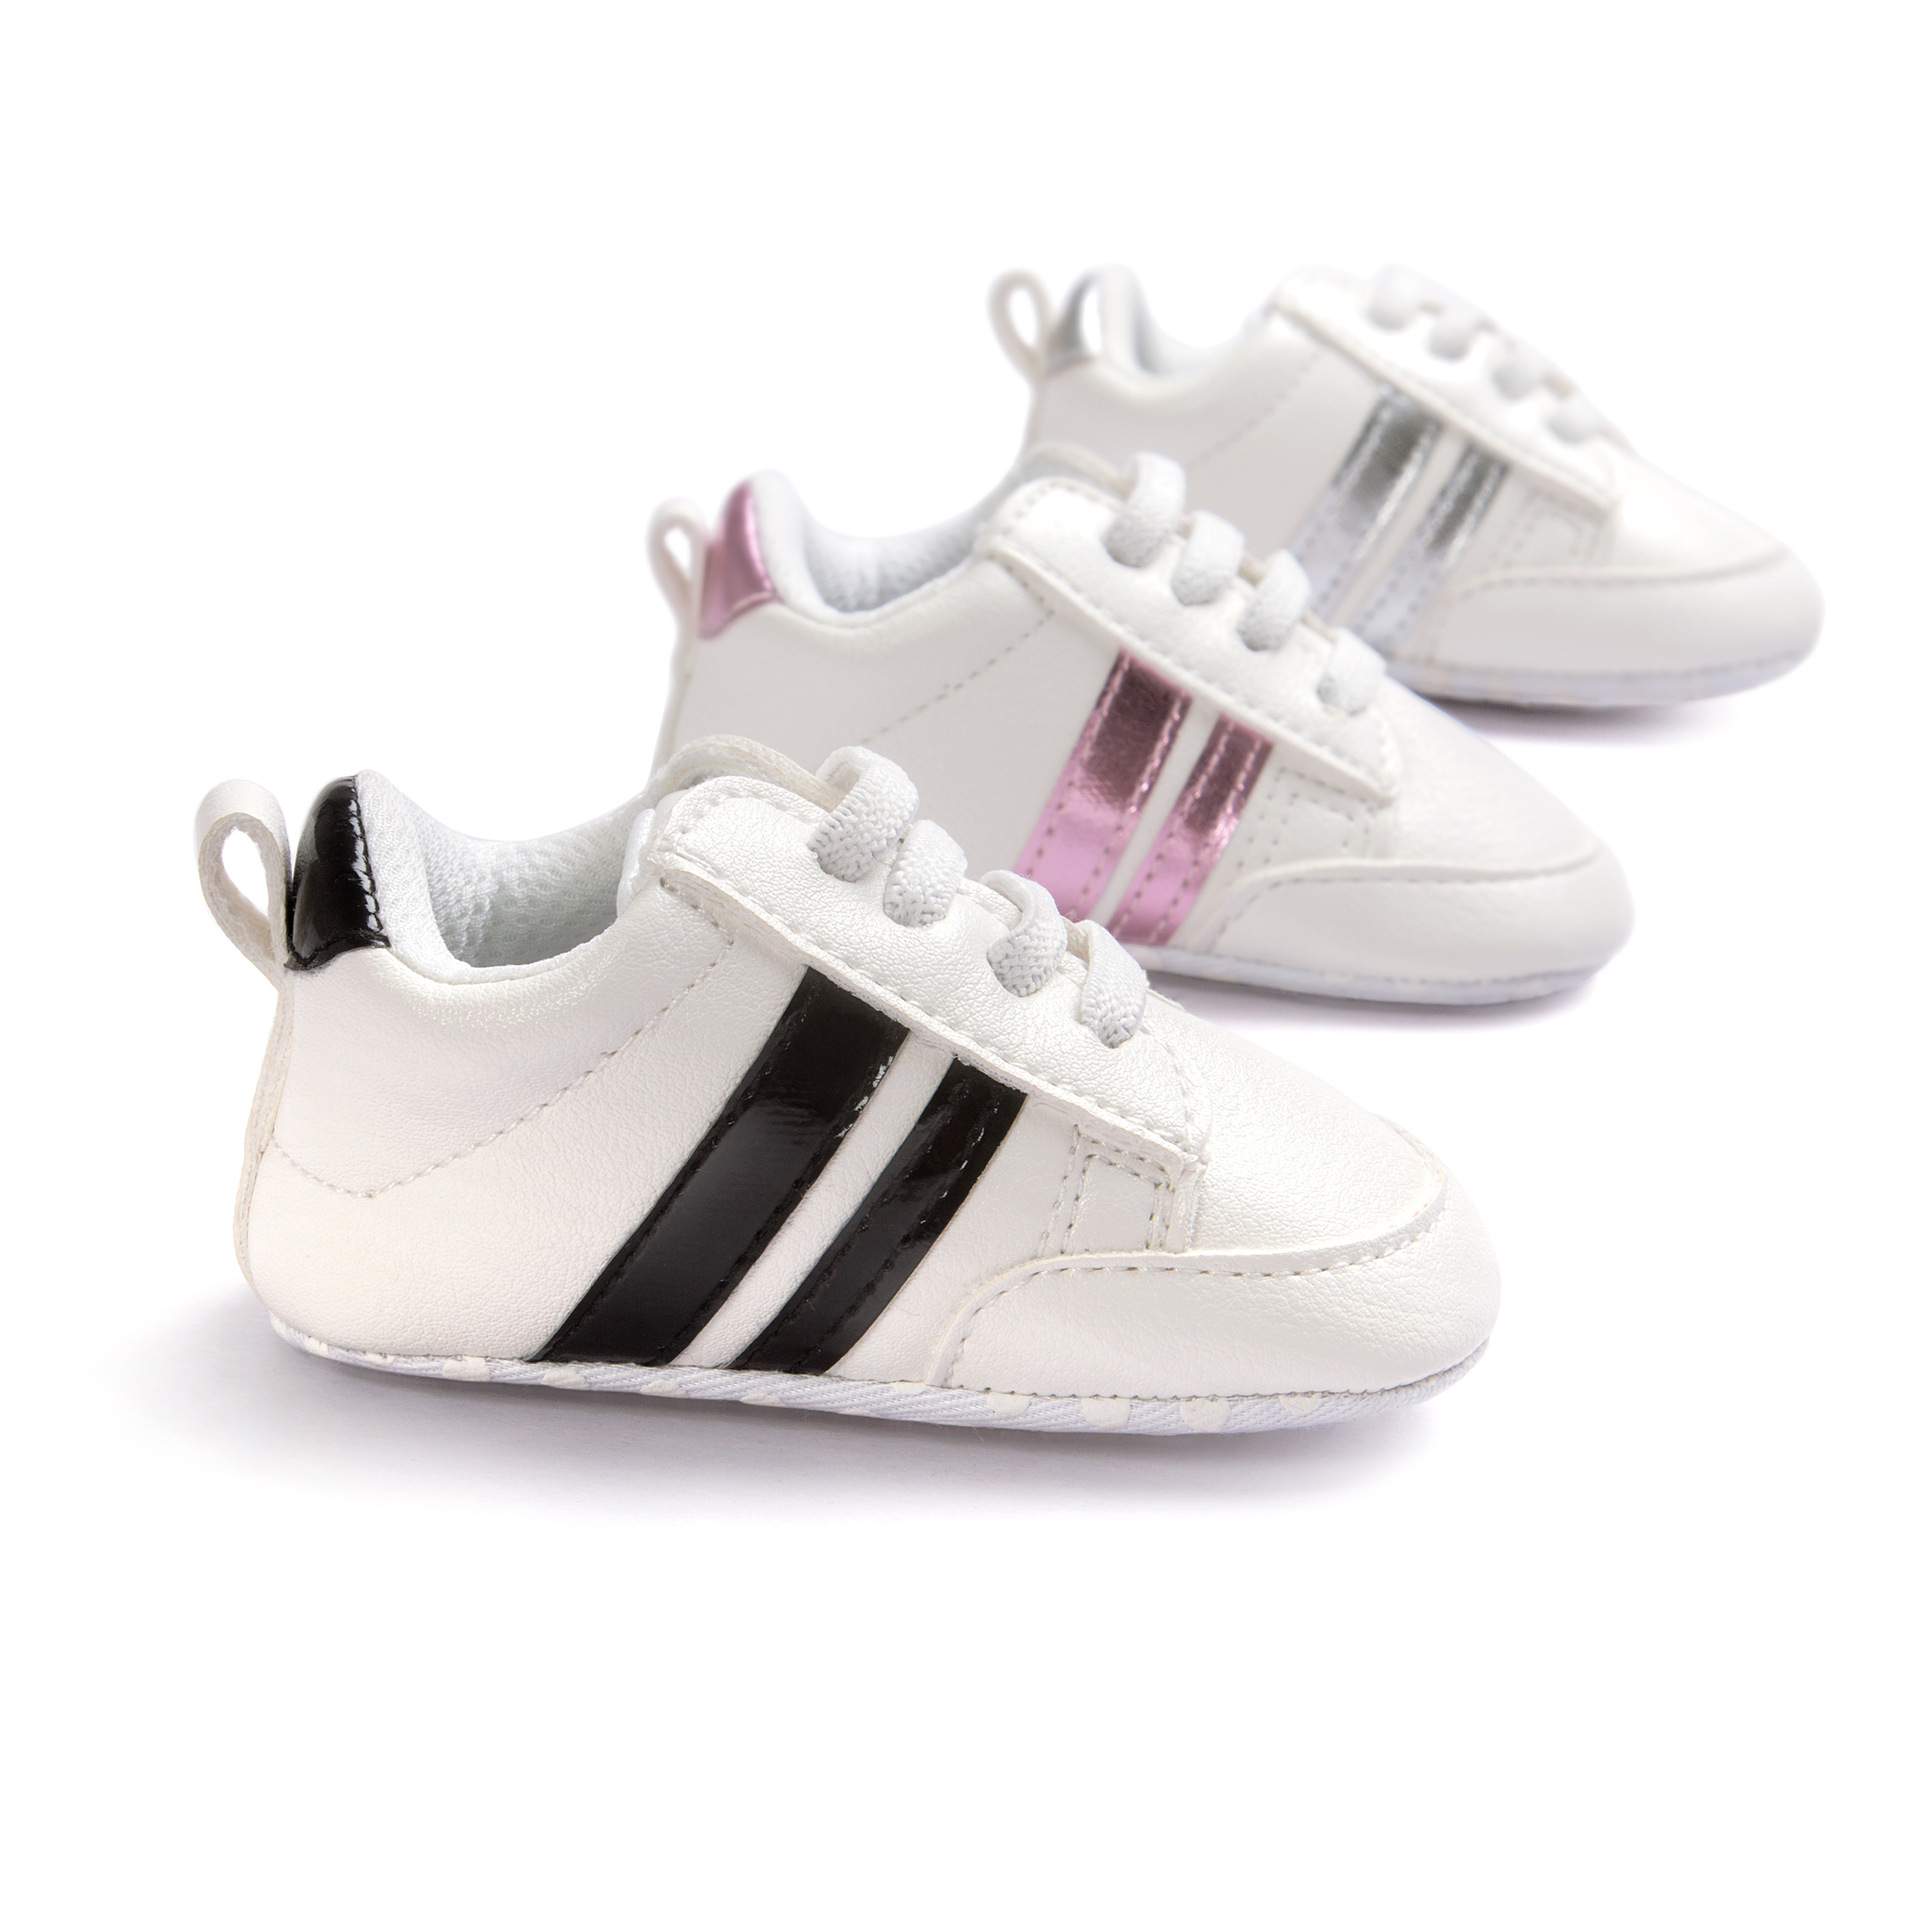 2019 New Soft Bottom Fashion Sneakers Baby Boys Girls First Walkers Baby Indoor Non-slop Toddler Shoes Baby Casual Shoe